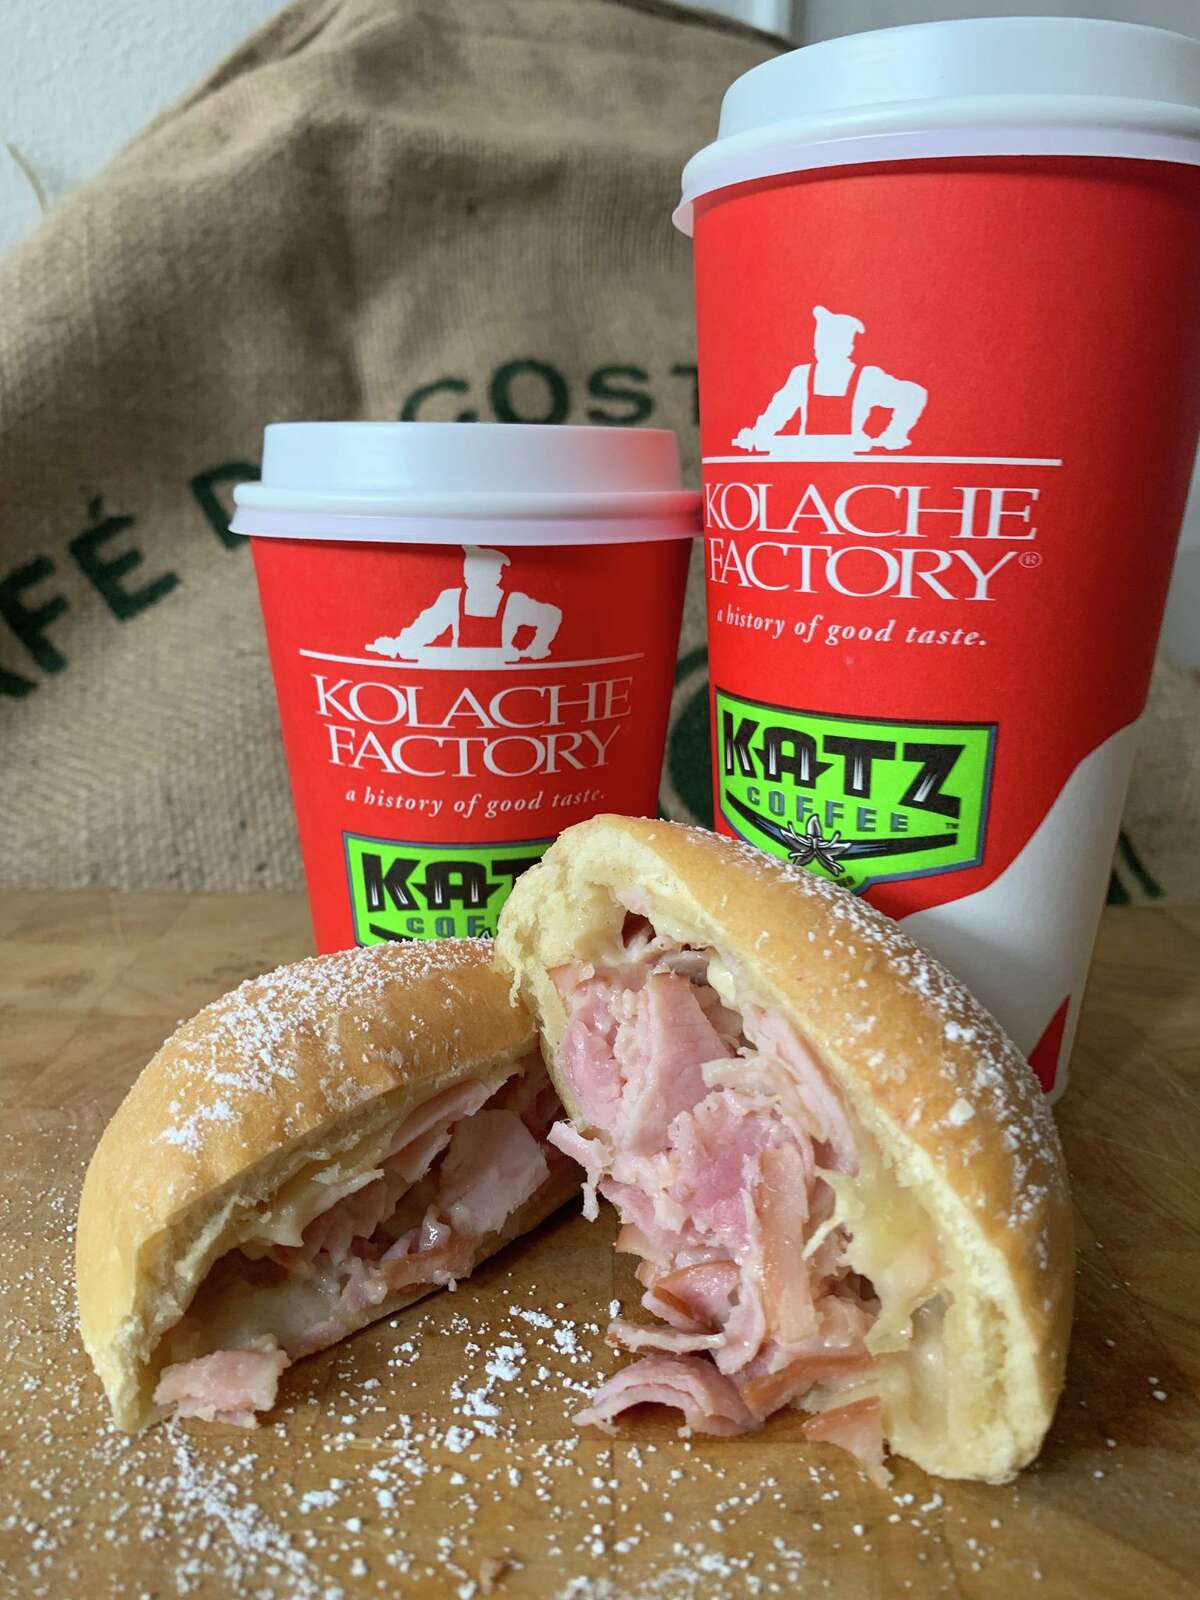 The Kolache Factory Breakfast Bakery and Café has opened a location at 7315 Fairmont Parkway in Pasadena. Others are in Webster, League City and Webster.